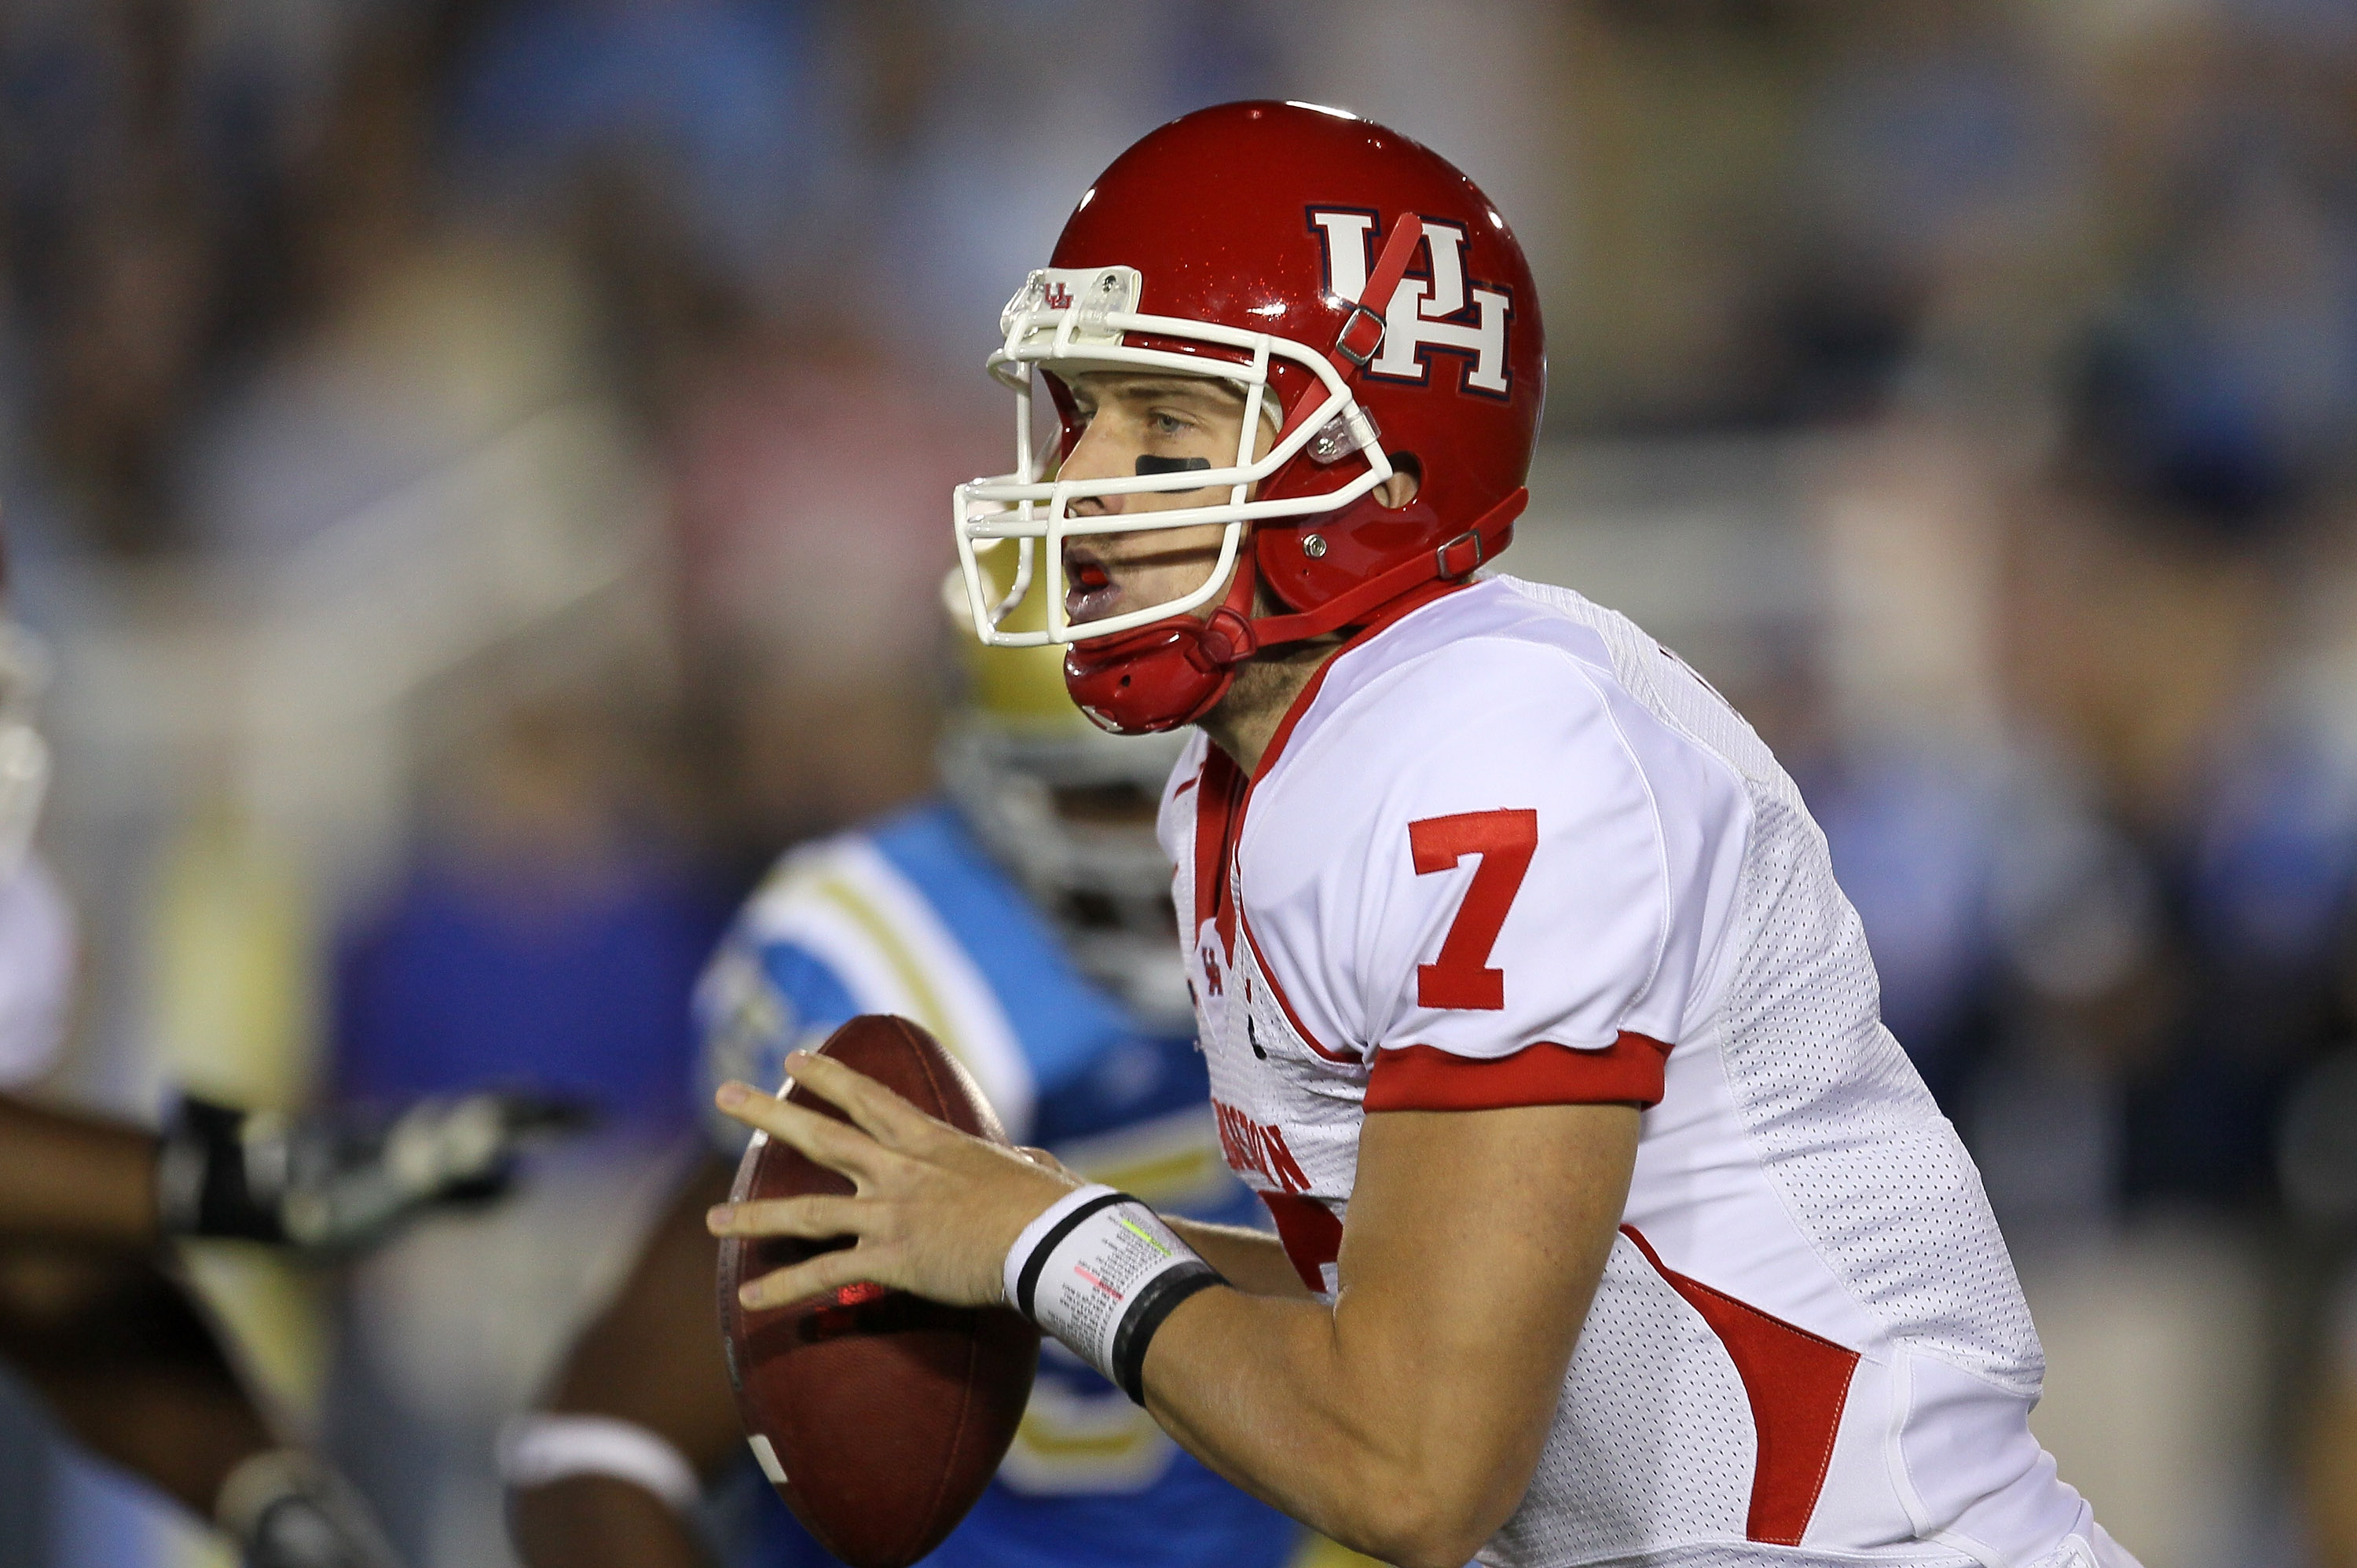 PASADENA, CA - SEPTEMBER 18:  Quarterback Case Keenum #7 of the Houston Cougars drops back to pass against the UCLA Bruins in the second quarter at the Rose Bowl on September 18, 2010 in Pasadena, California.  UCLA won 31-13.  (Photo by Stephen Dunn/Getty